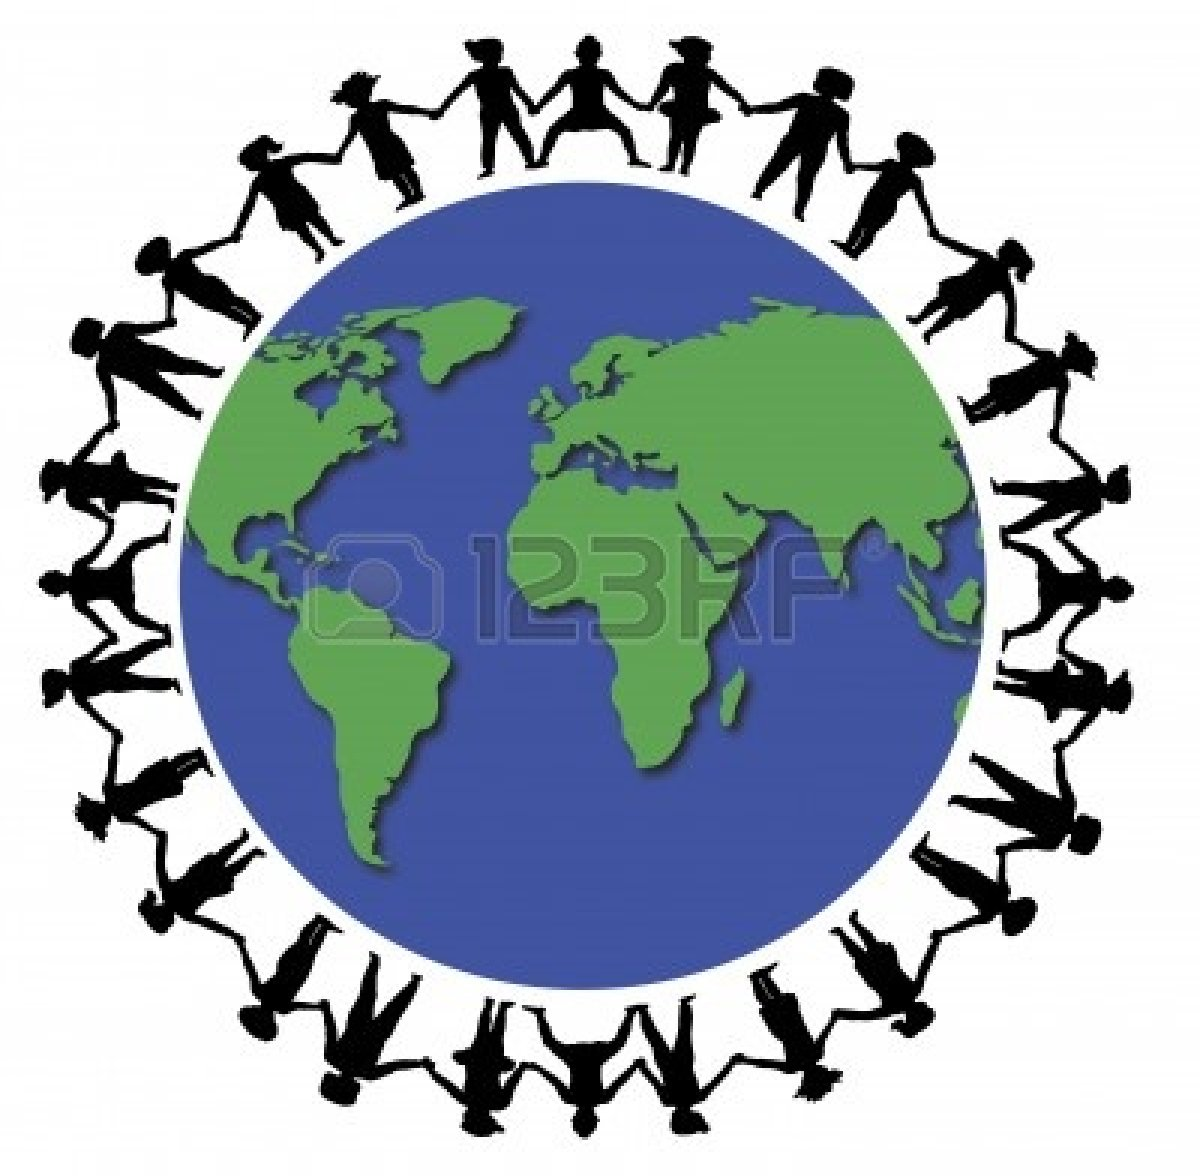 Hand in hand people around globe clipart.